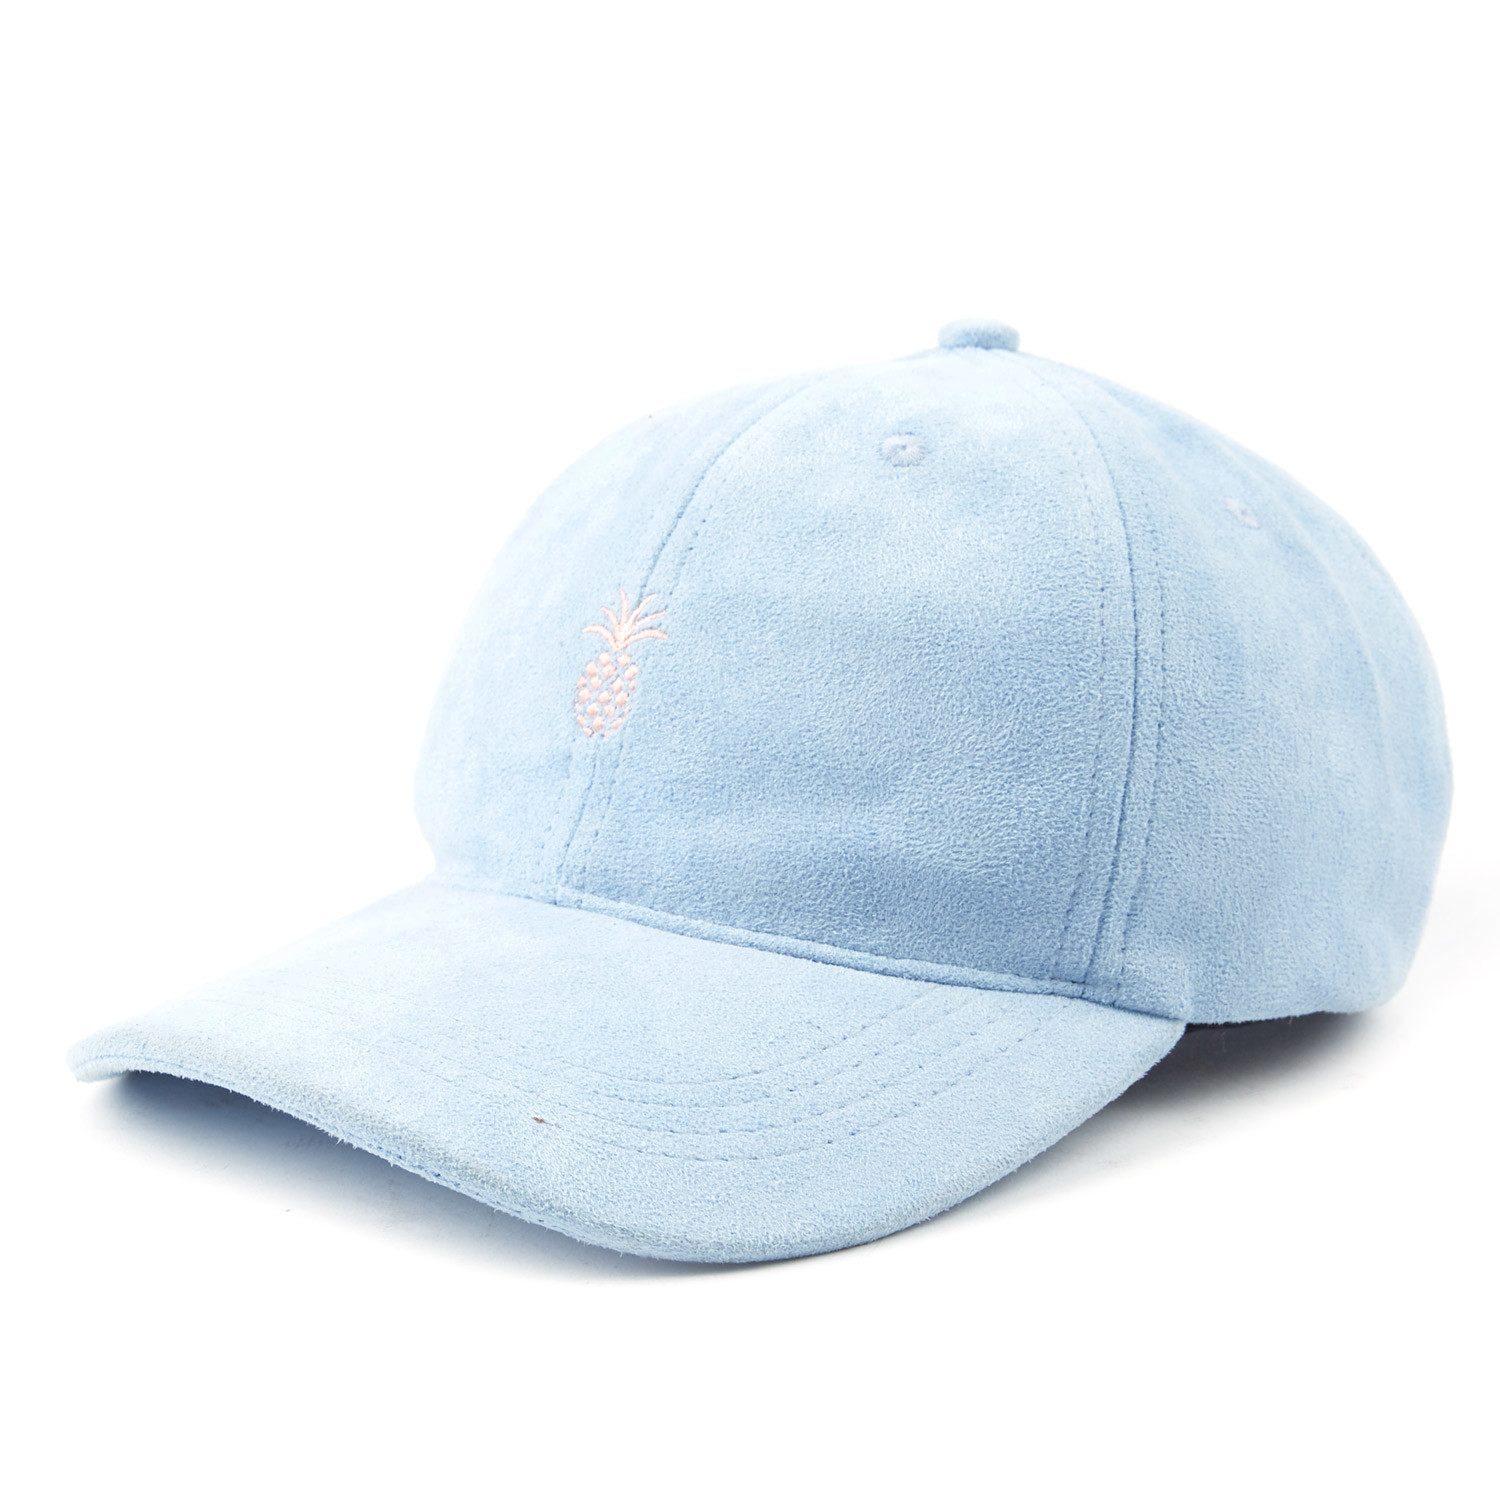 Pineapple Suede Dad Hat Baby Blue Qilo Nyc Fashion